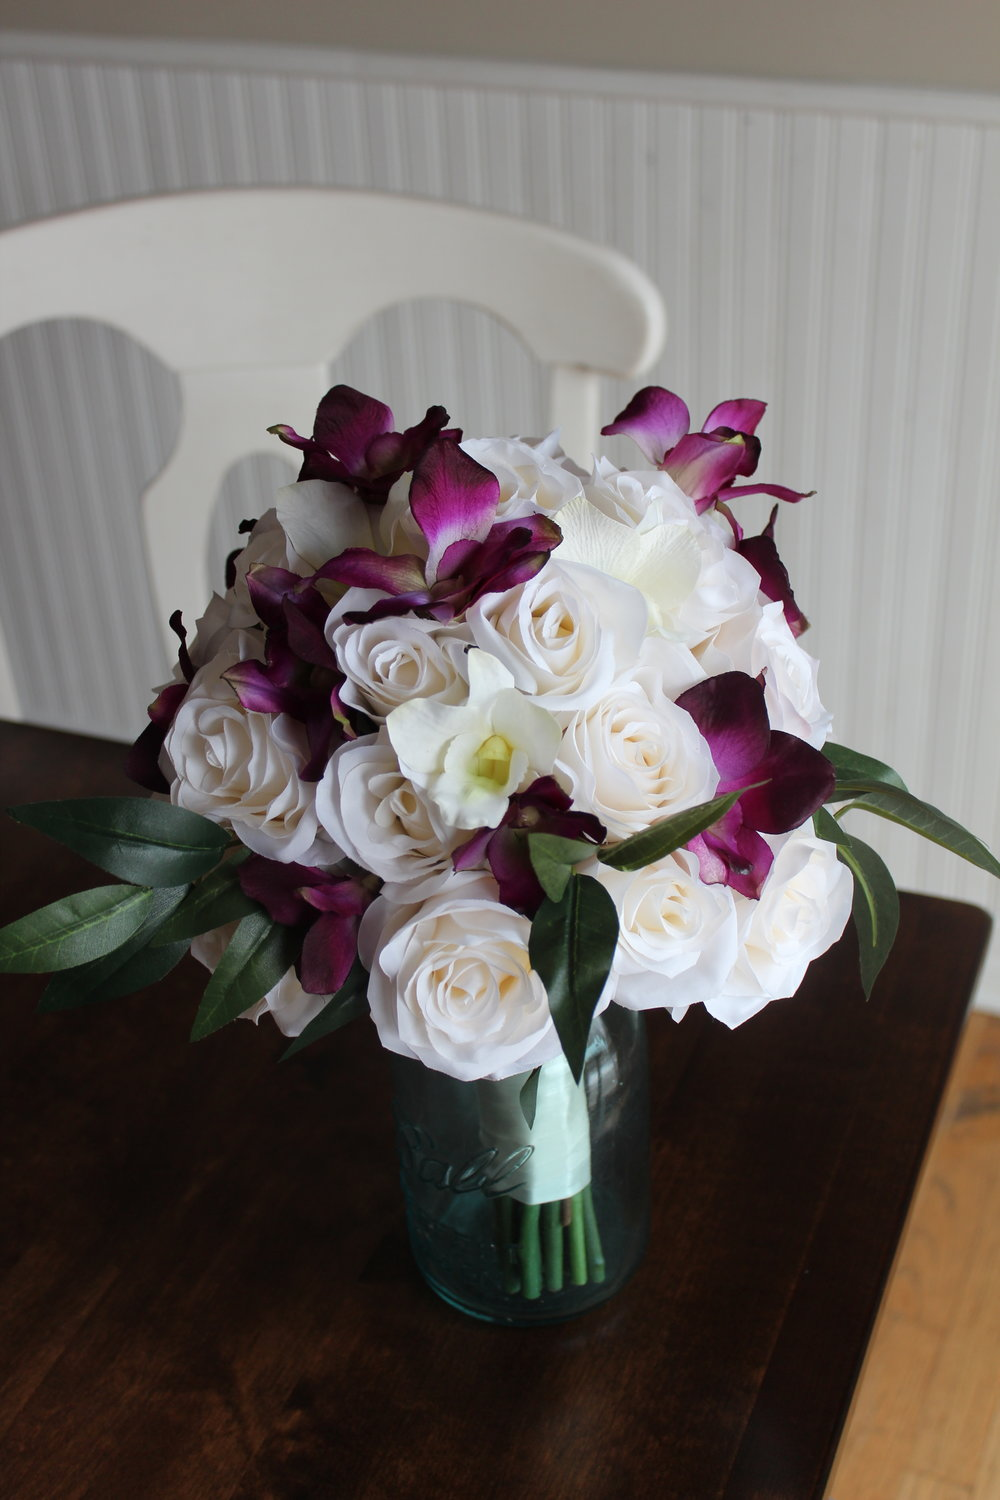 Ivory Roses, Ivory and Purple Dendrobium Orchids, Ruscus.